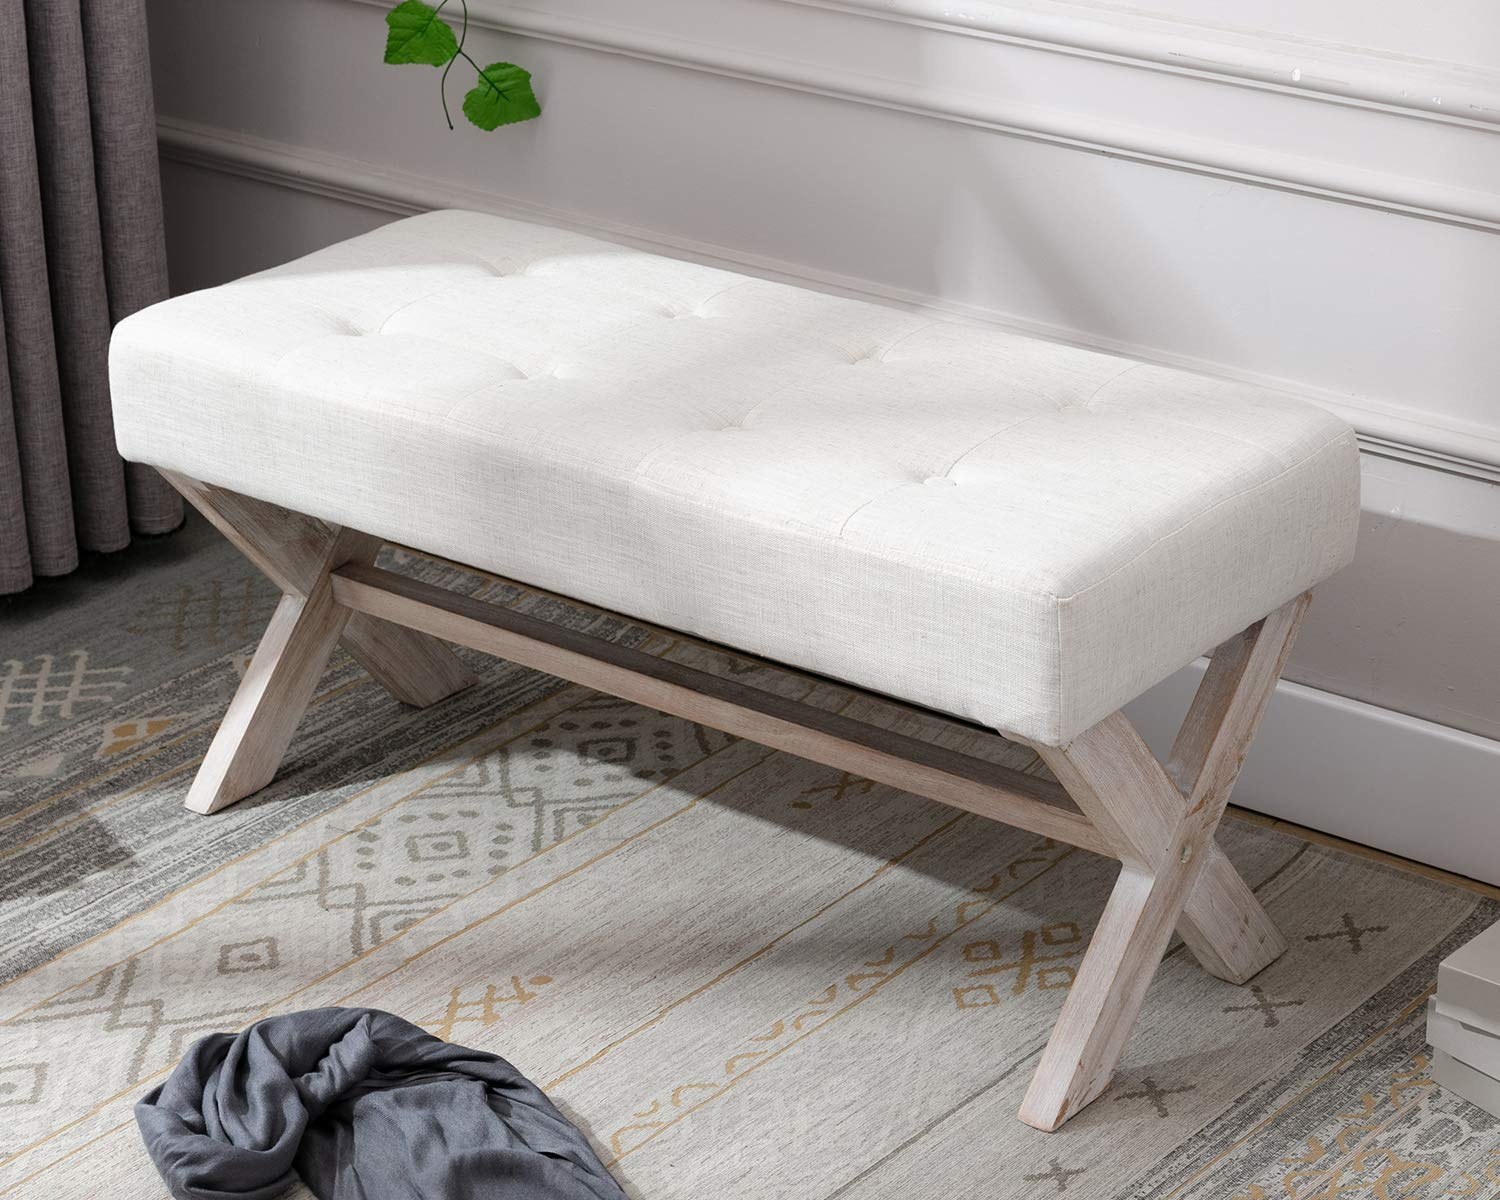 chairus Fabric Upholstered Entryway Bench Seat, 3 inch Bedroom Bench Seat  with X-Shaped Wood Legs for Living Room, Foyer or Hallway by - Light Beige